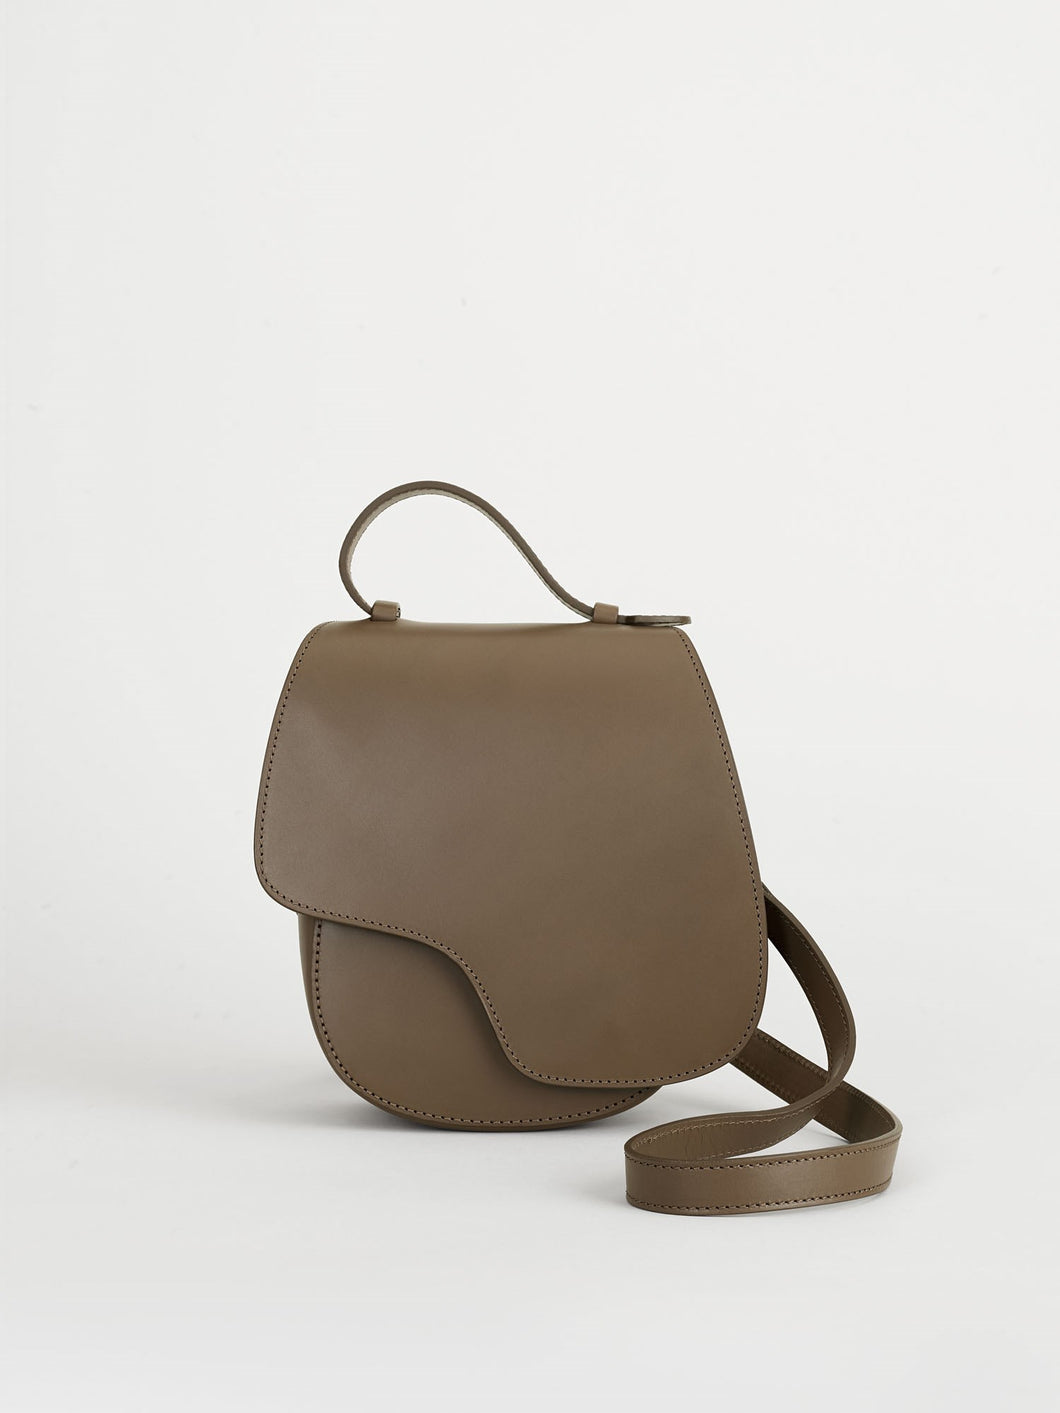 Carrara, Khaki Brown, Crossbody Bag